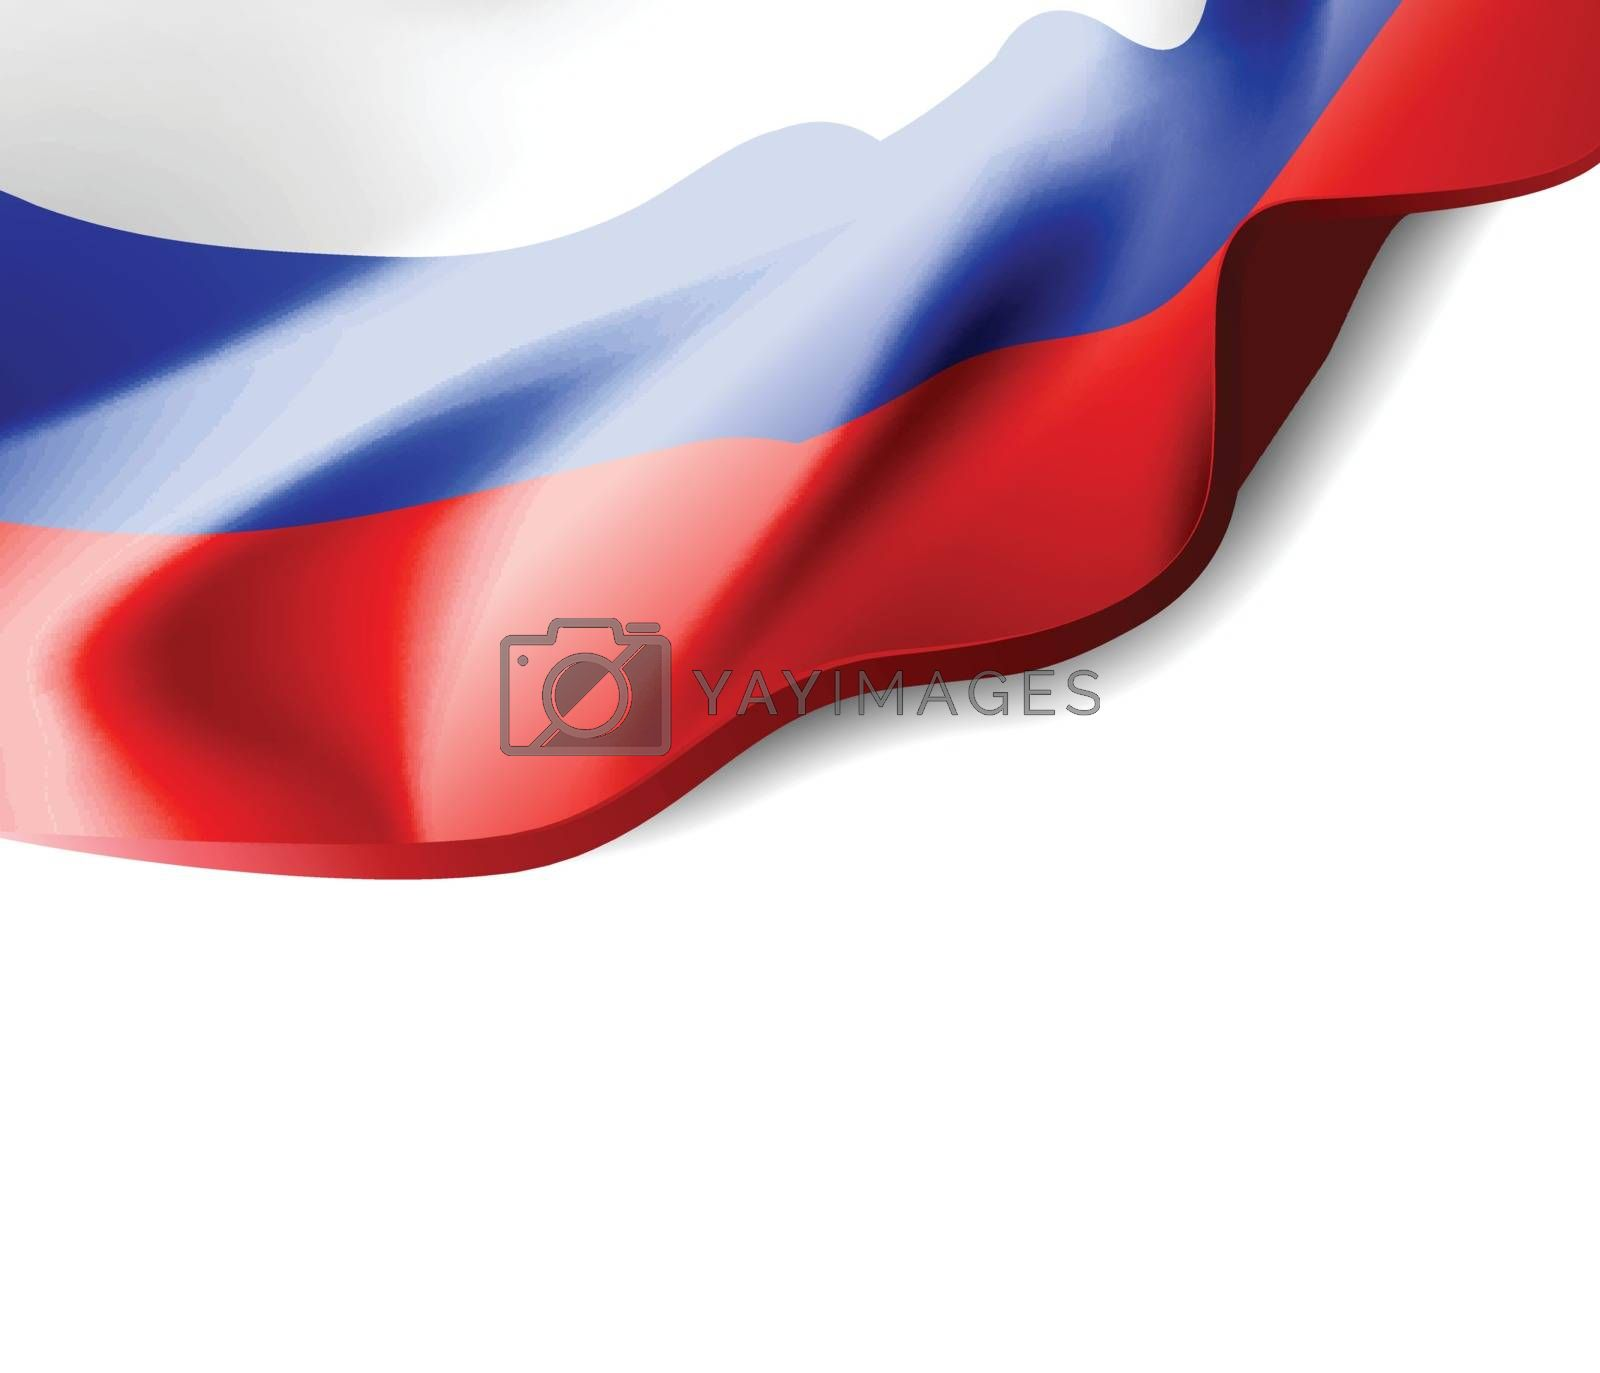 Waving flag of Russia close-up with shadow on white background. Vector illustration with copy space for your design